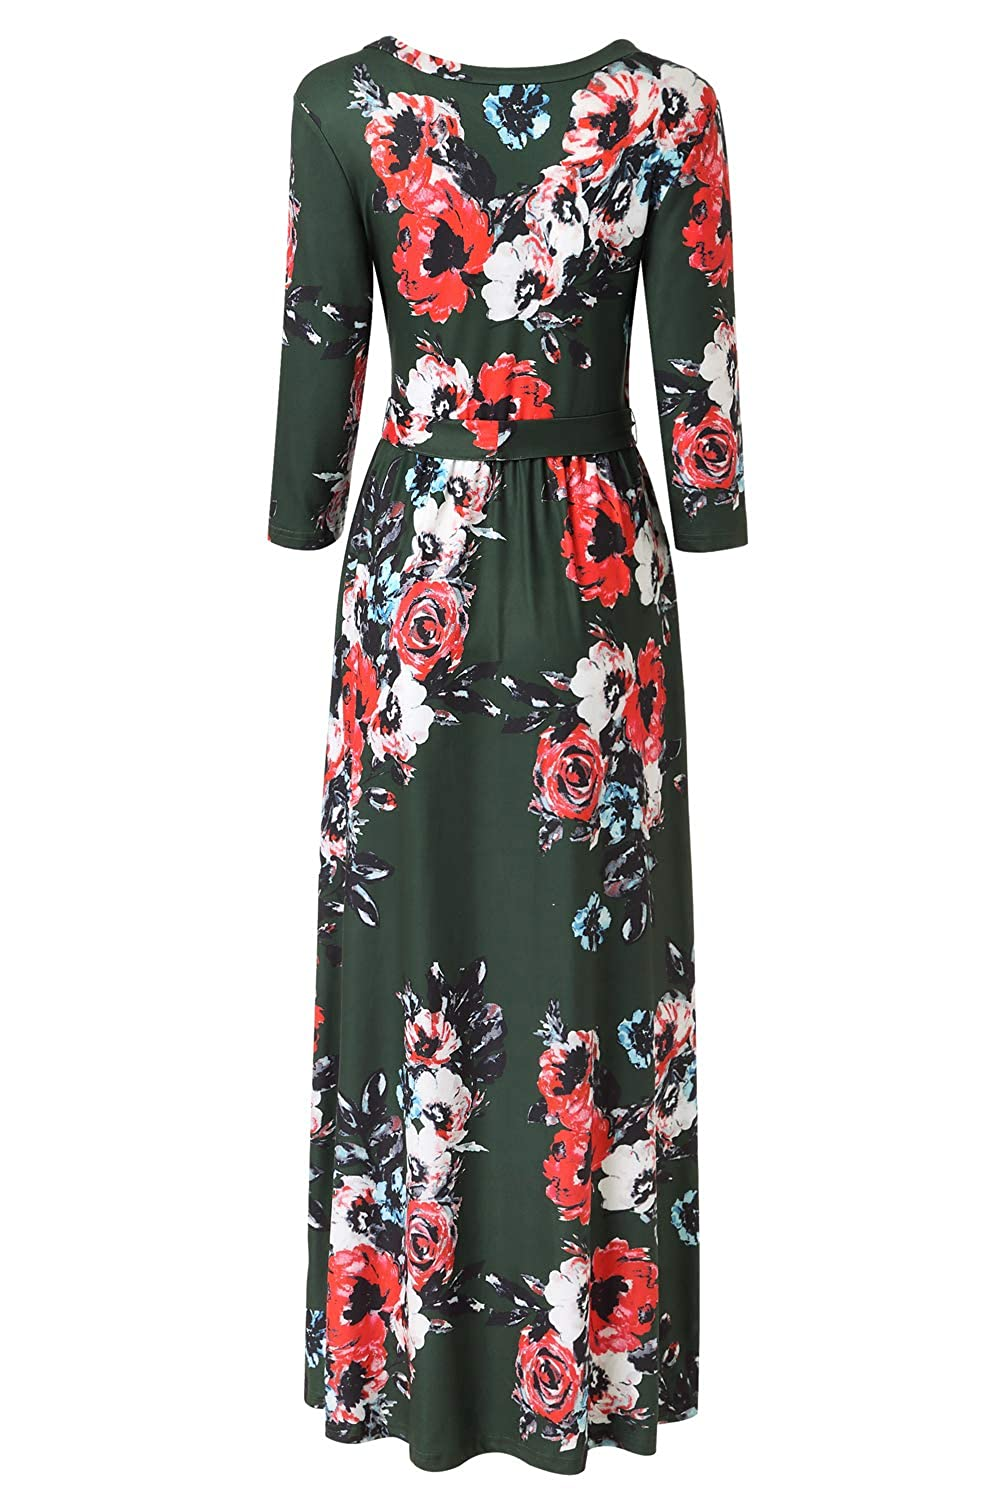 88dbc78d2257 Zattcas Womens 3/4 Sleeve Floral Print Faux Wrap Long Maxi Dress with Belt  at Amazon Women's Clothing store: